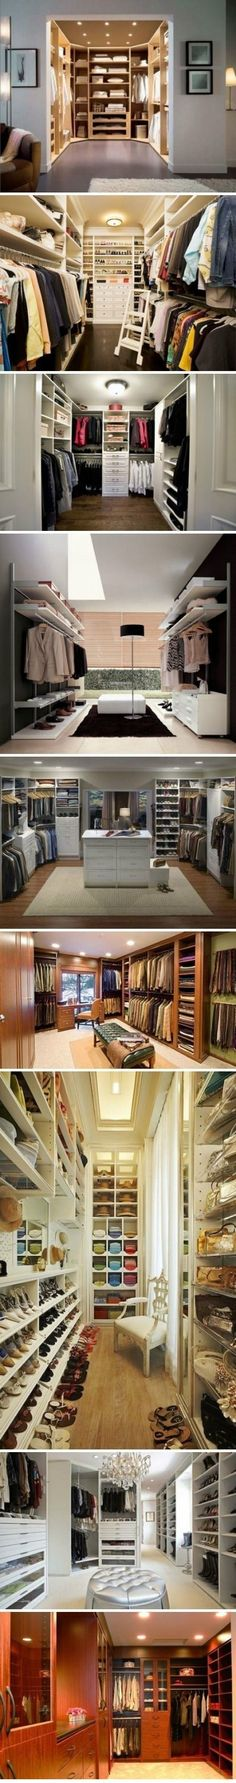 I wish I had all this closet space!